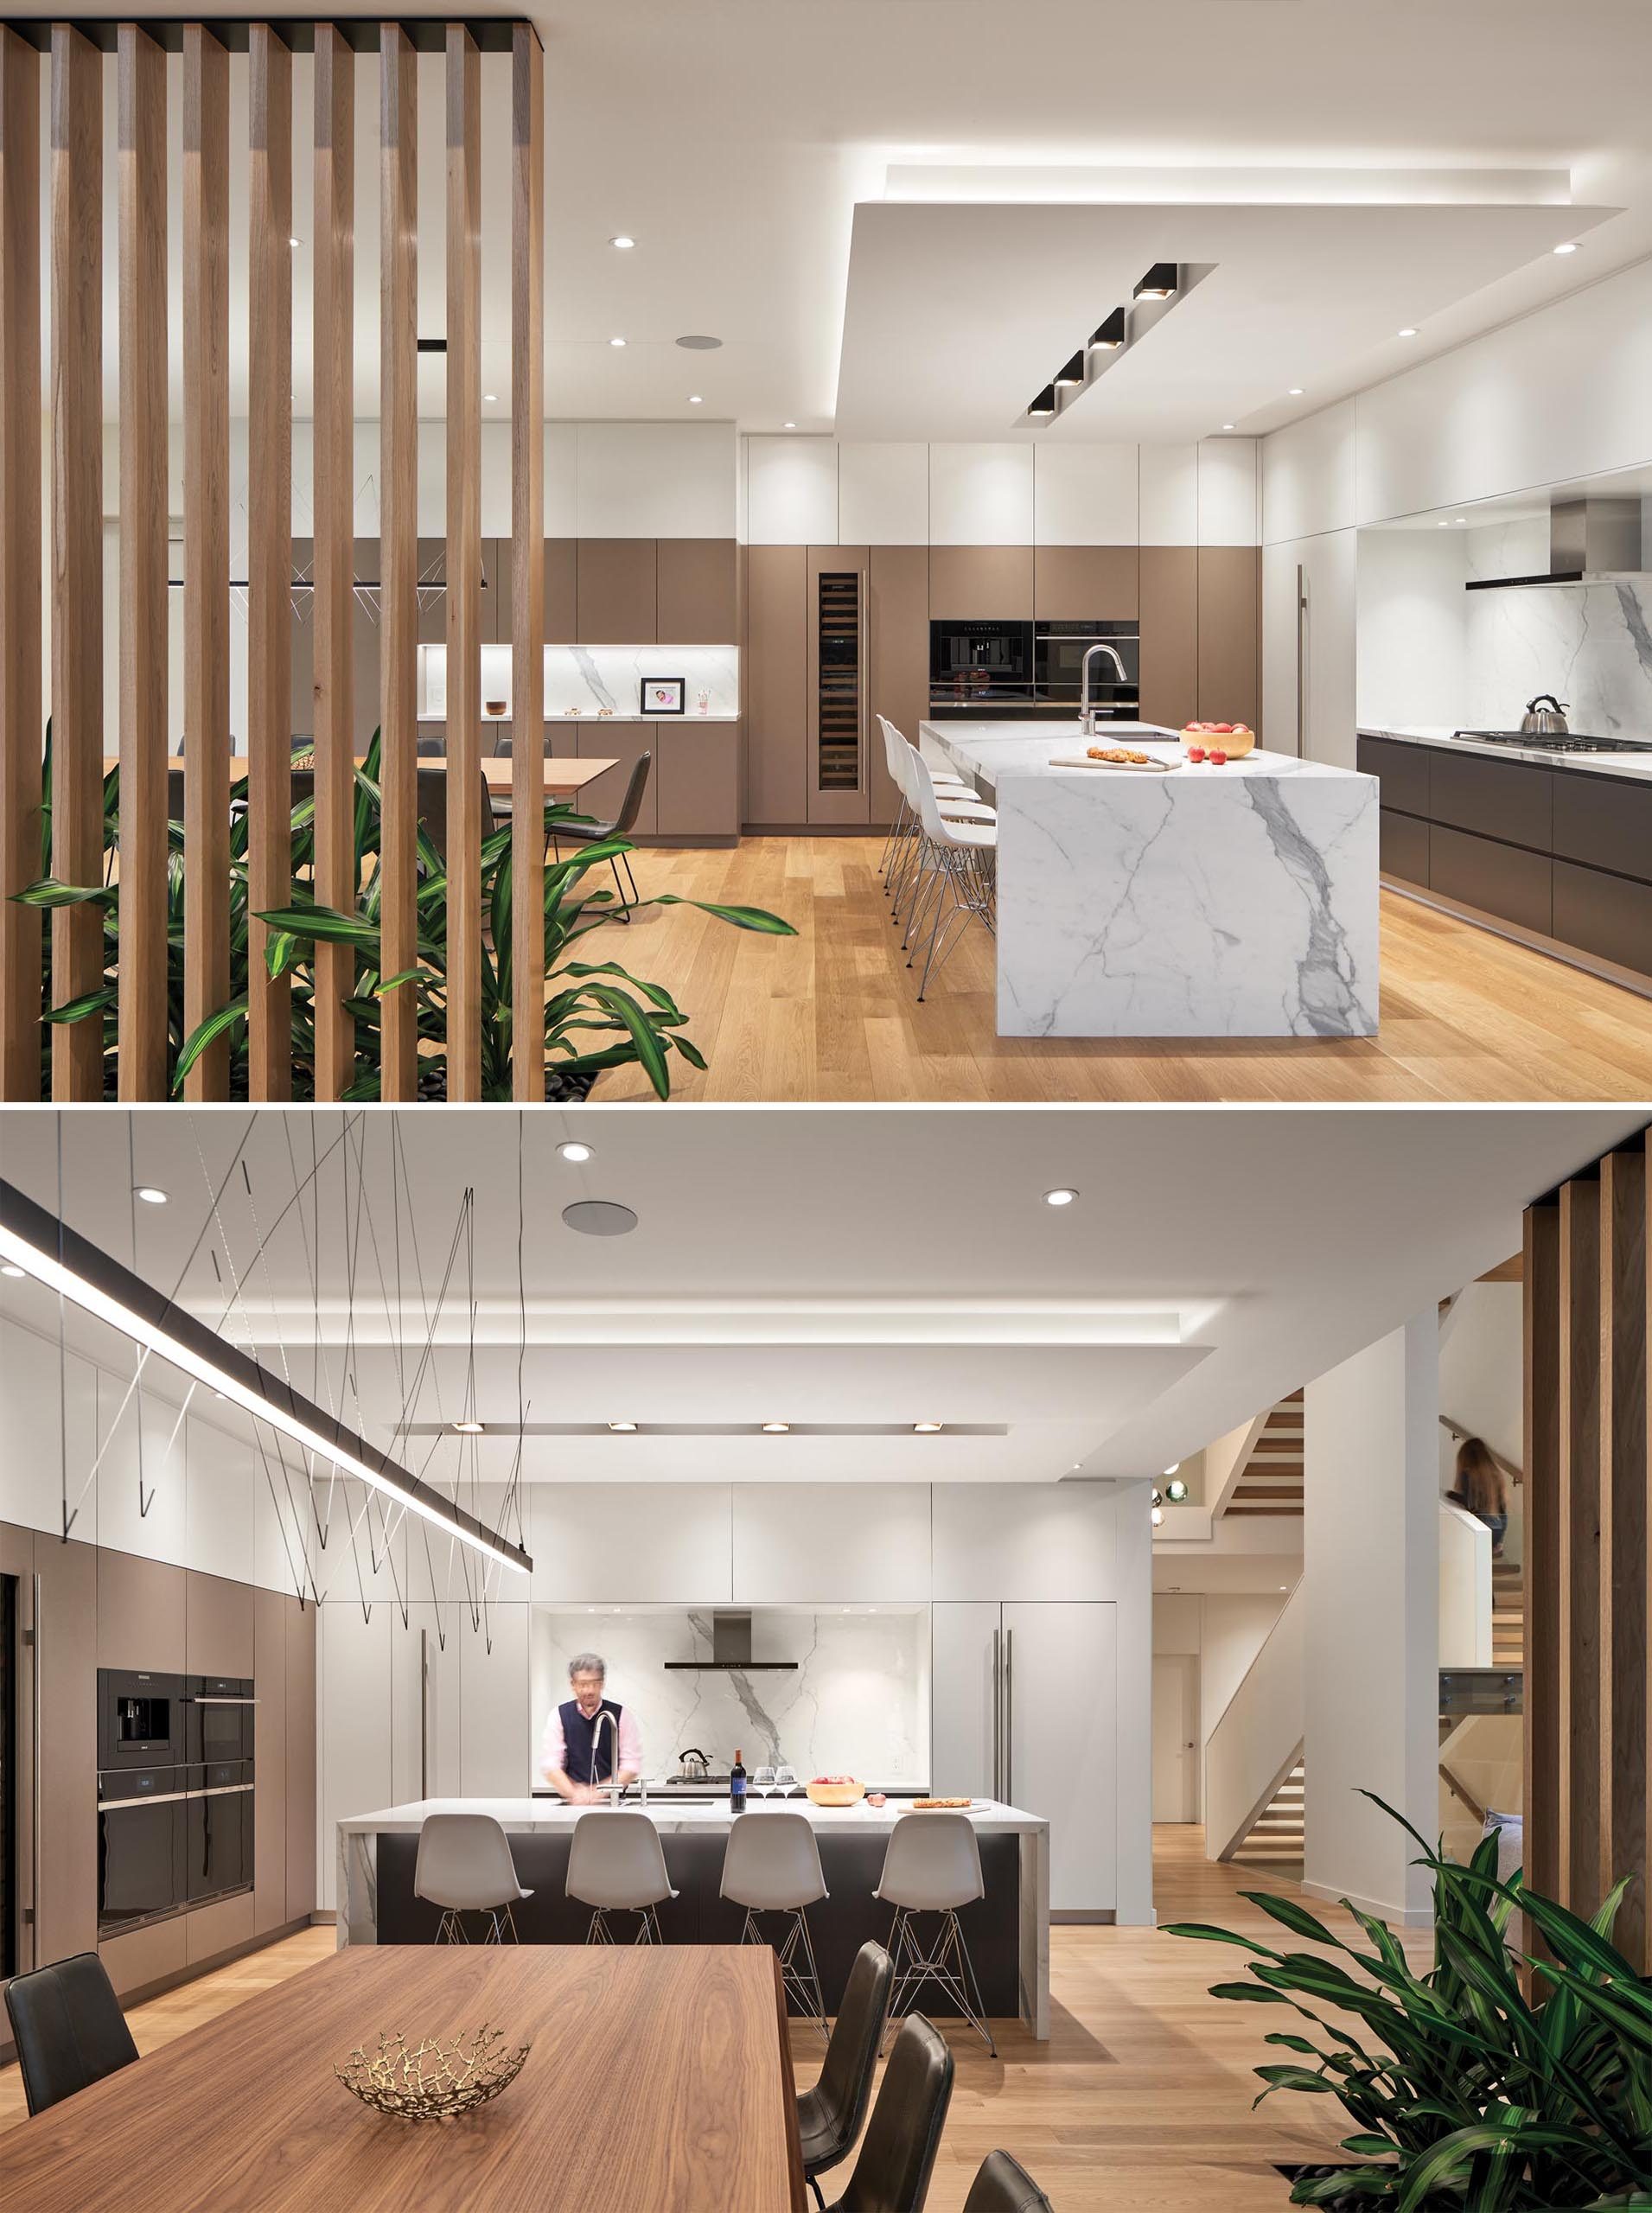 In this modern dining room and kitchen, a wall of tan cabinetry connects the two spaces. In the kitchen, a large island creates additional counter space and room for seating, while the black and white cabinets have a more minimalist look.